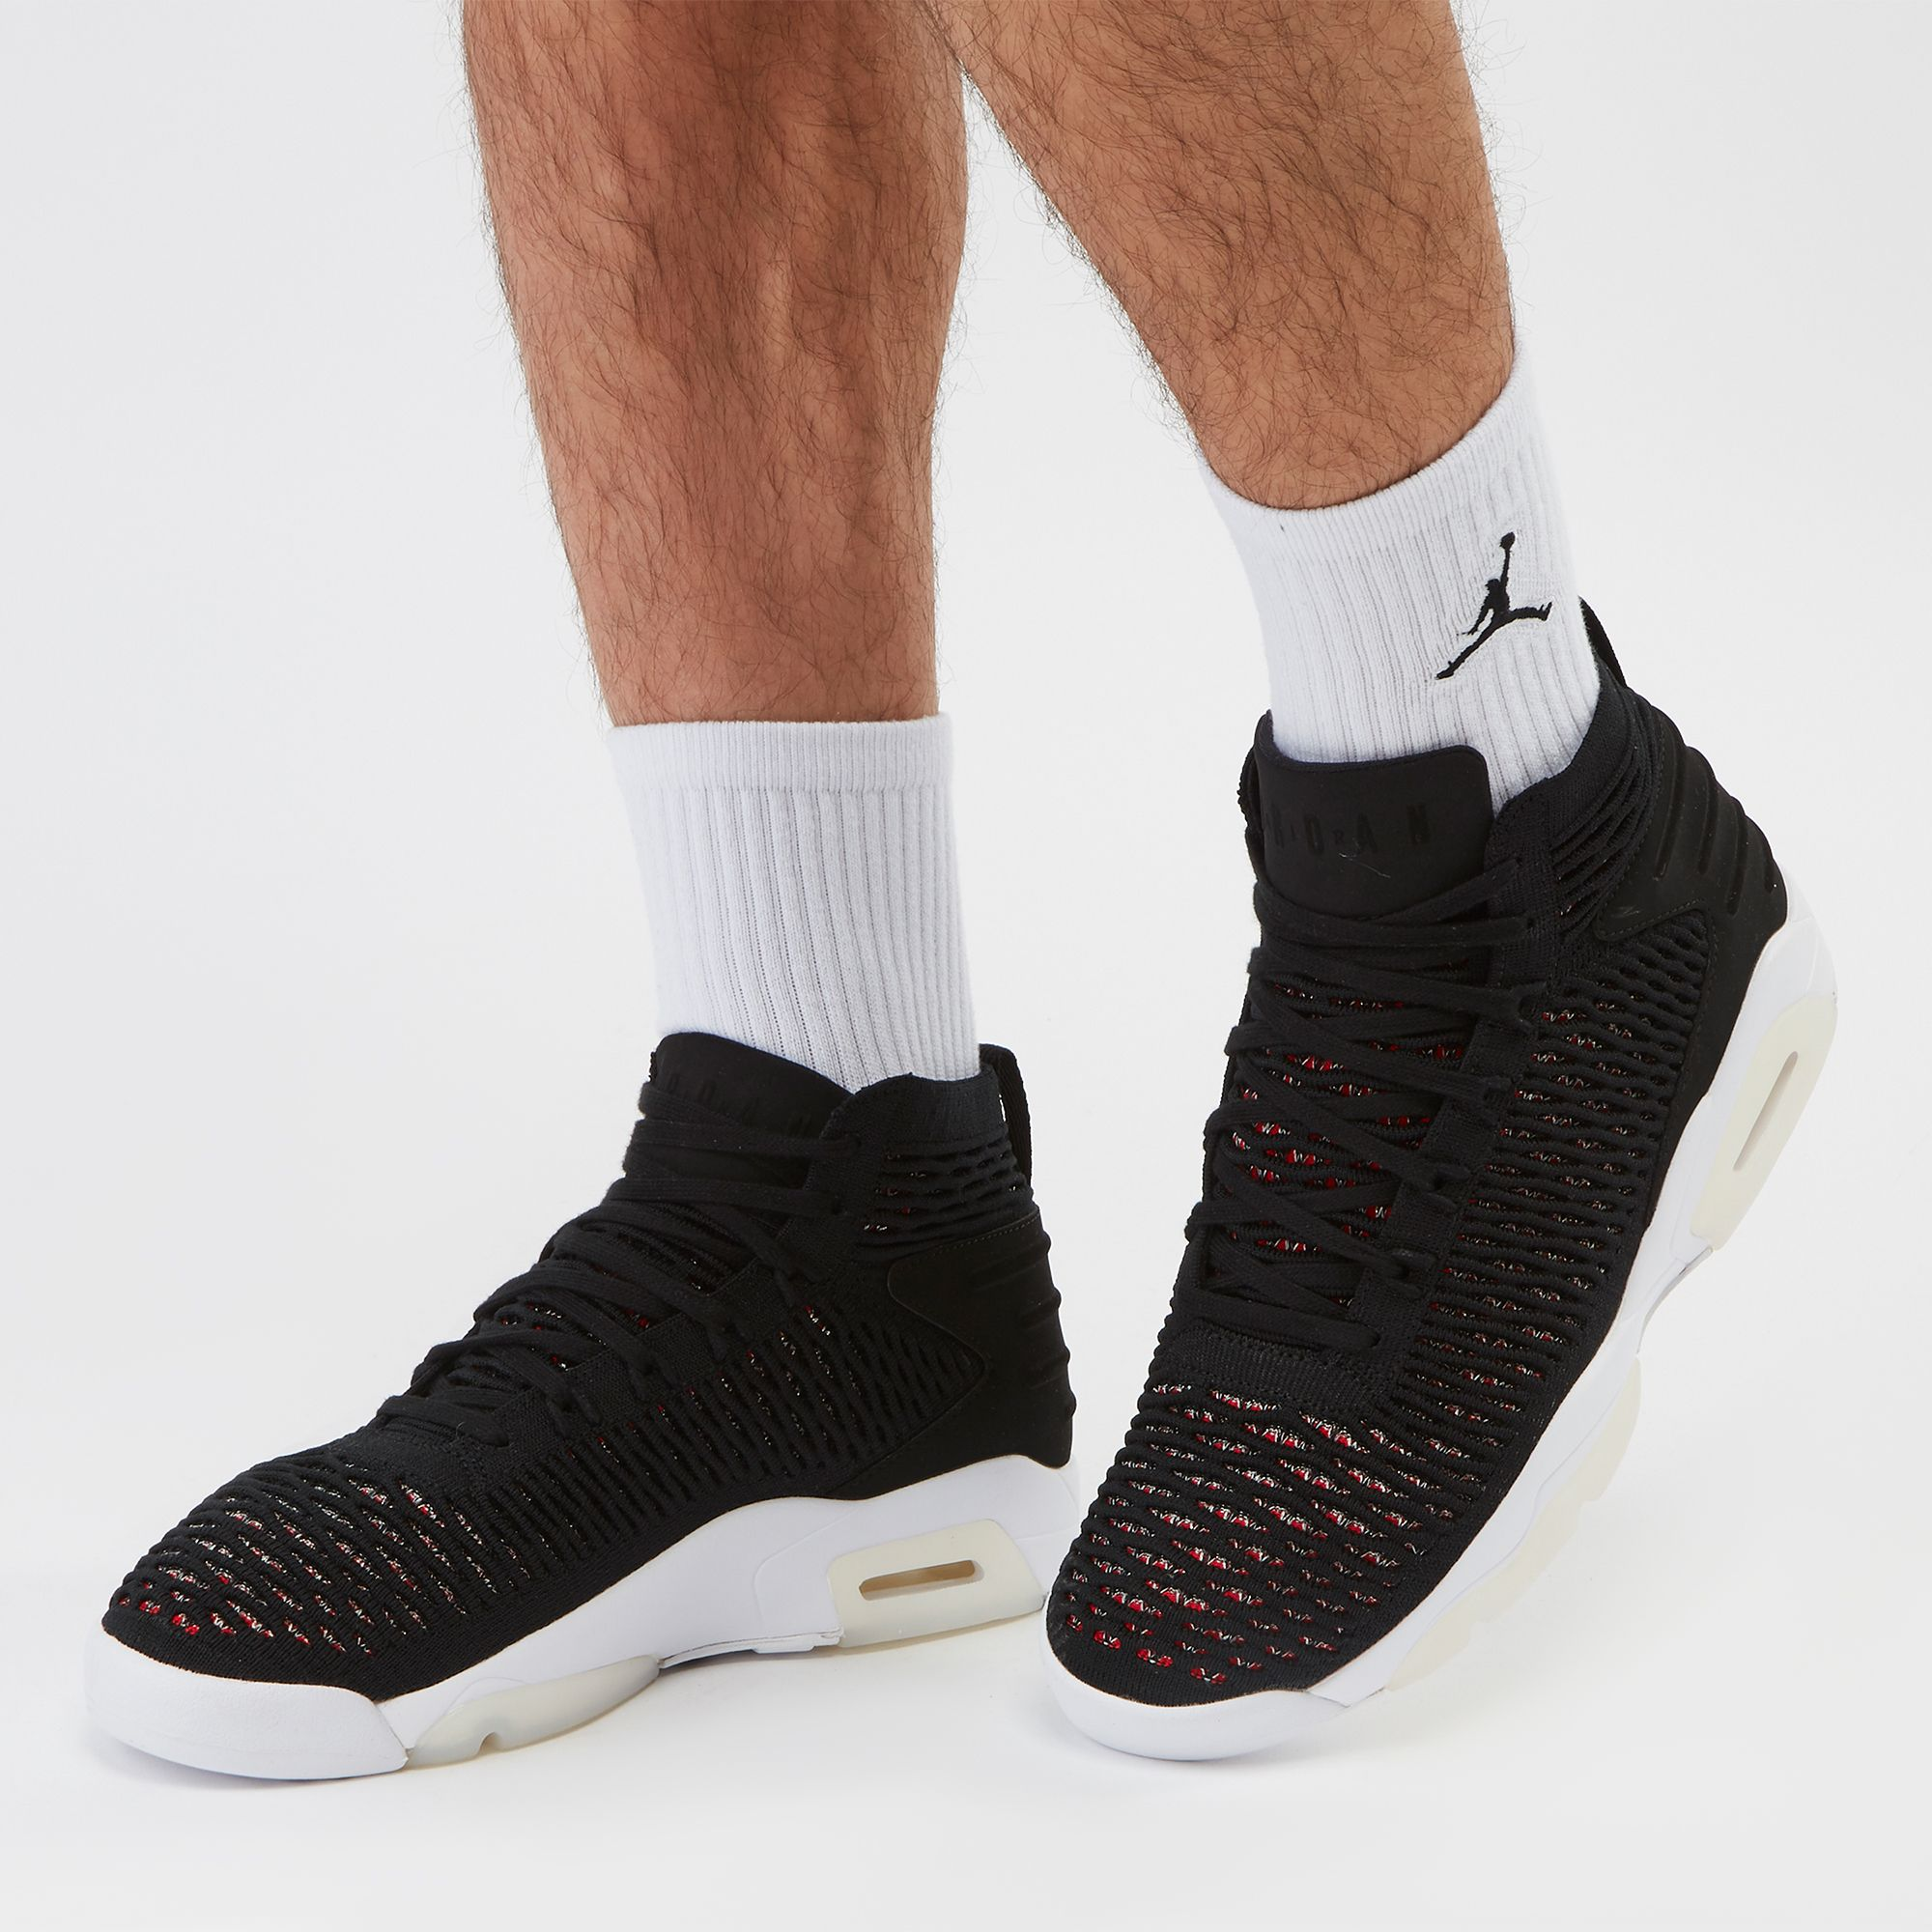 buy online 81da4 1e562 Black Jordan Flyknit Elevation 23 Shoe | Sneakers | Shoes | Sports ...